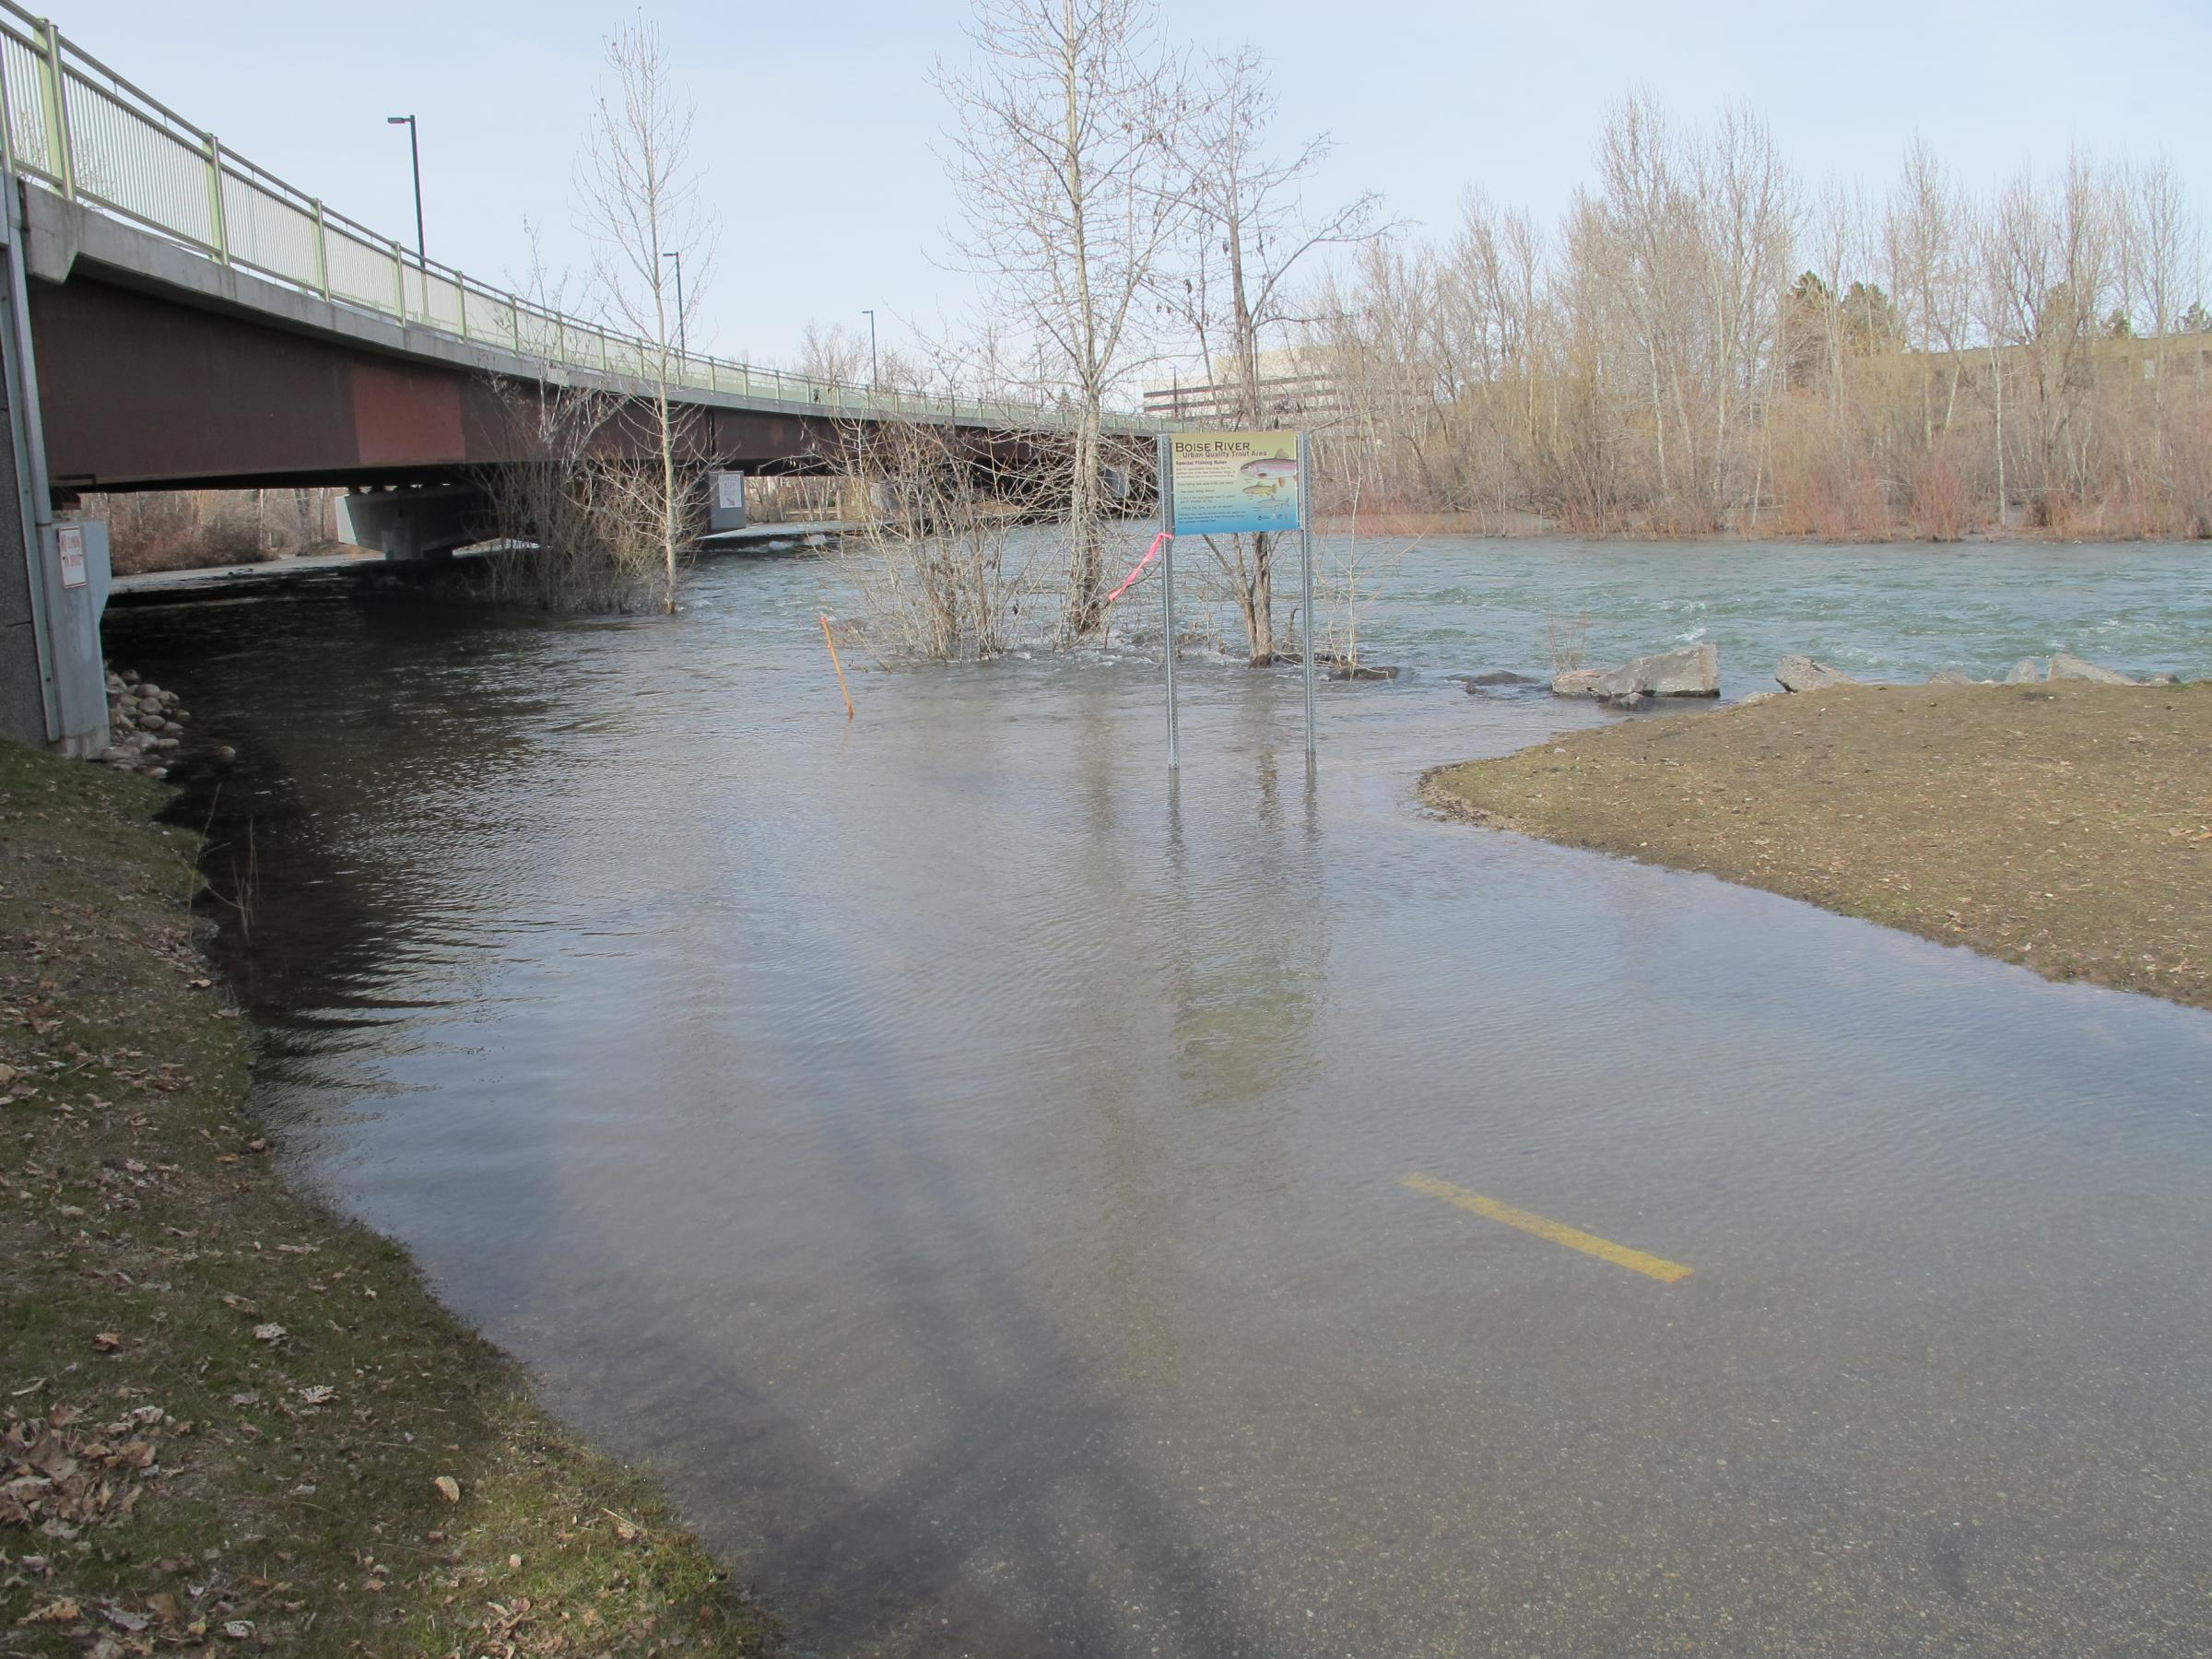 Flooding on Boise River, why now? - YouTube